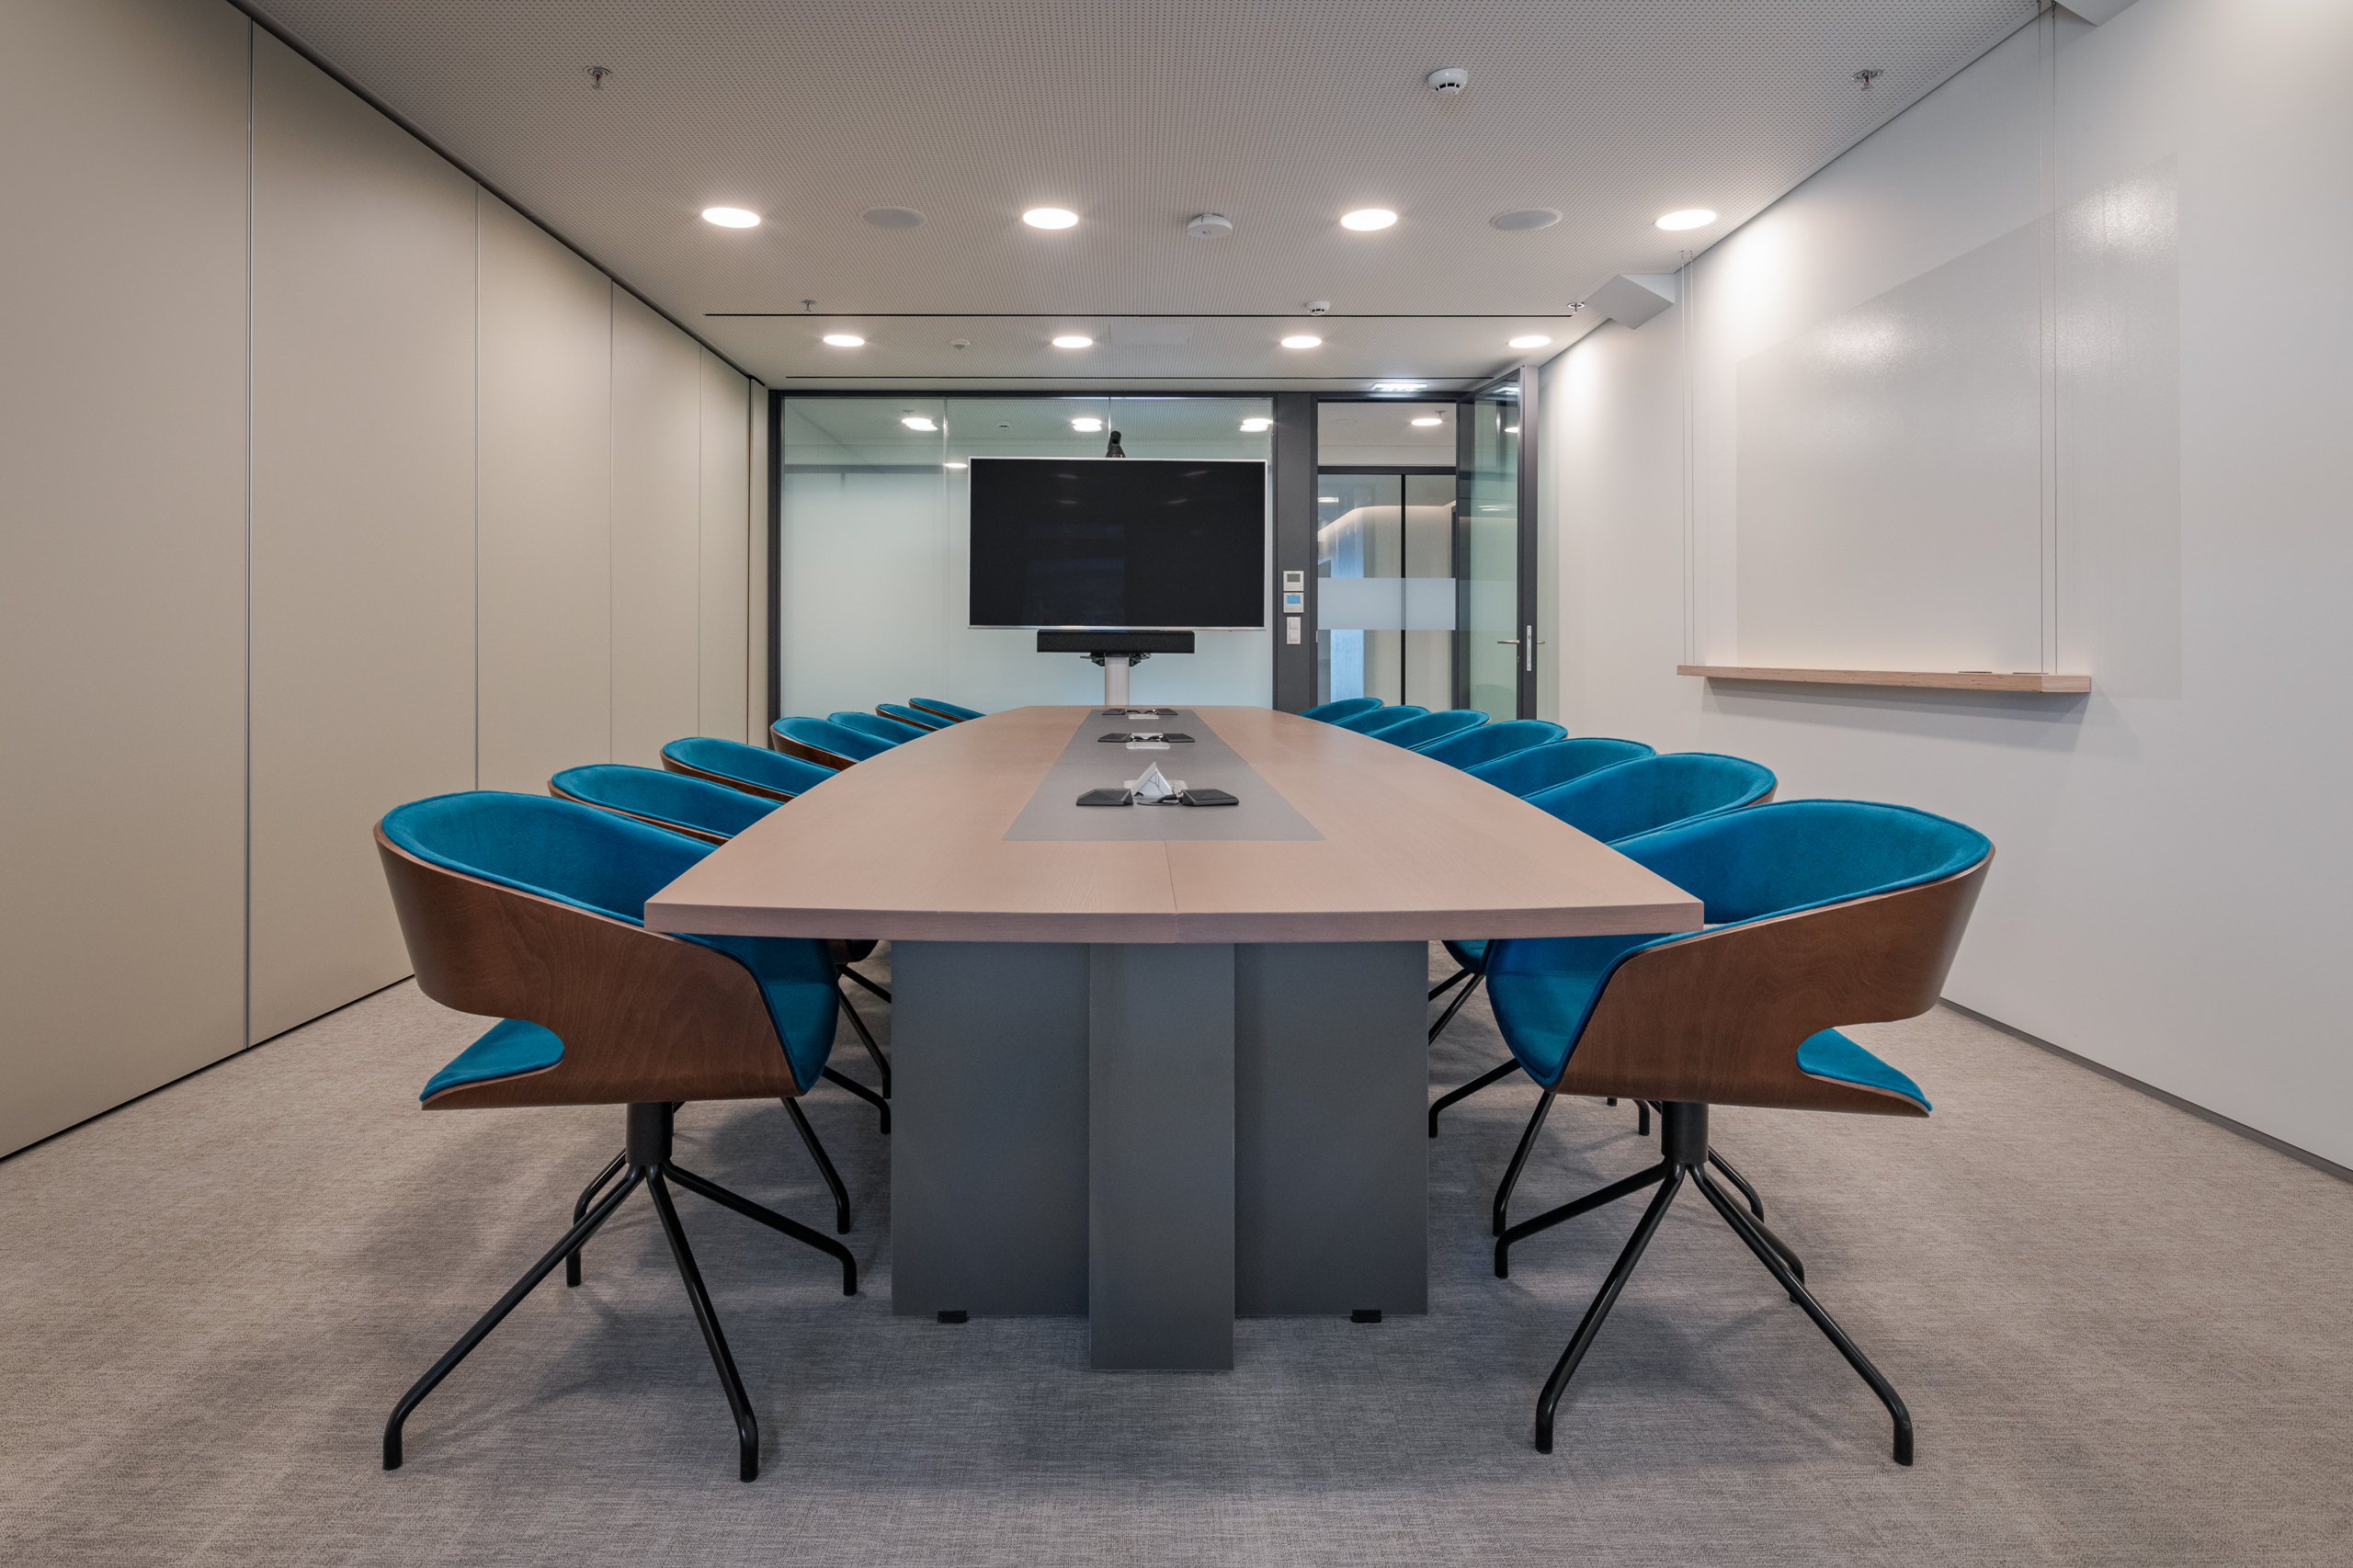 Software Company's Office design by Stavropoulou architects